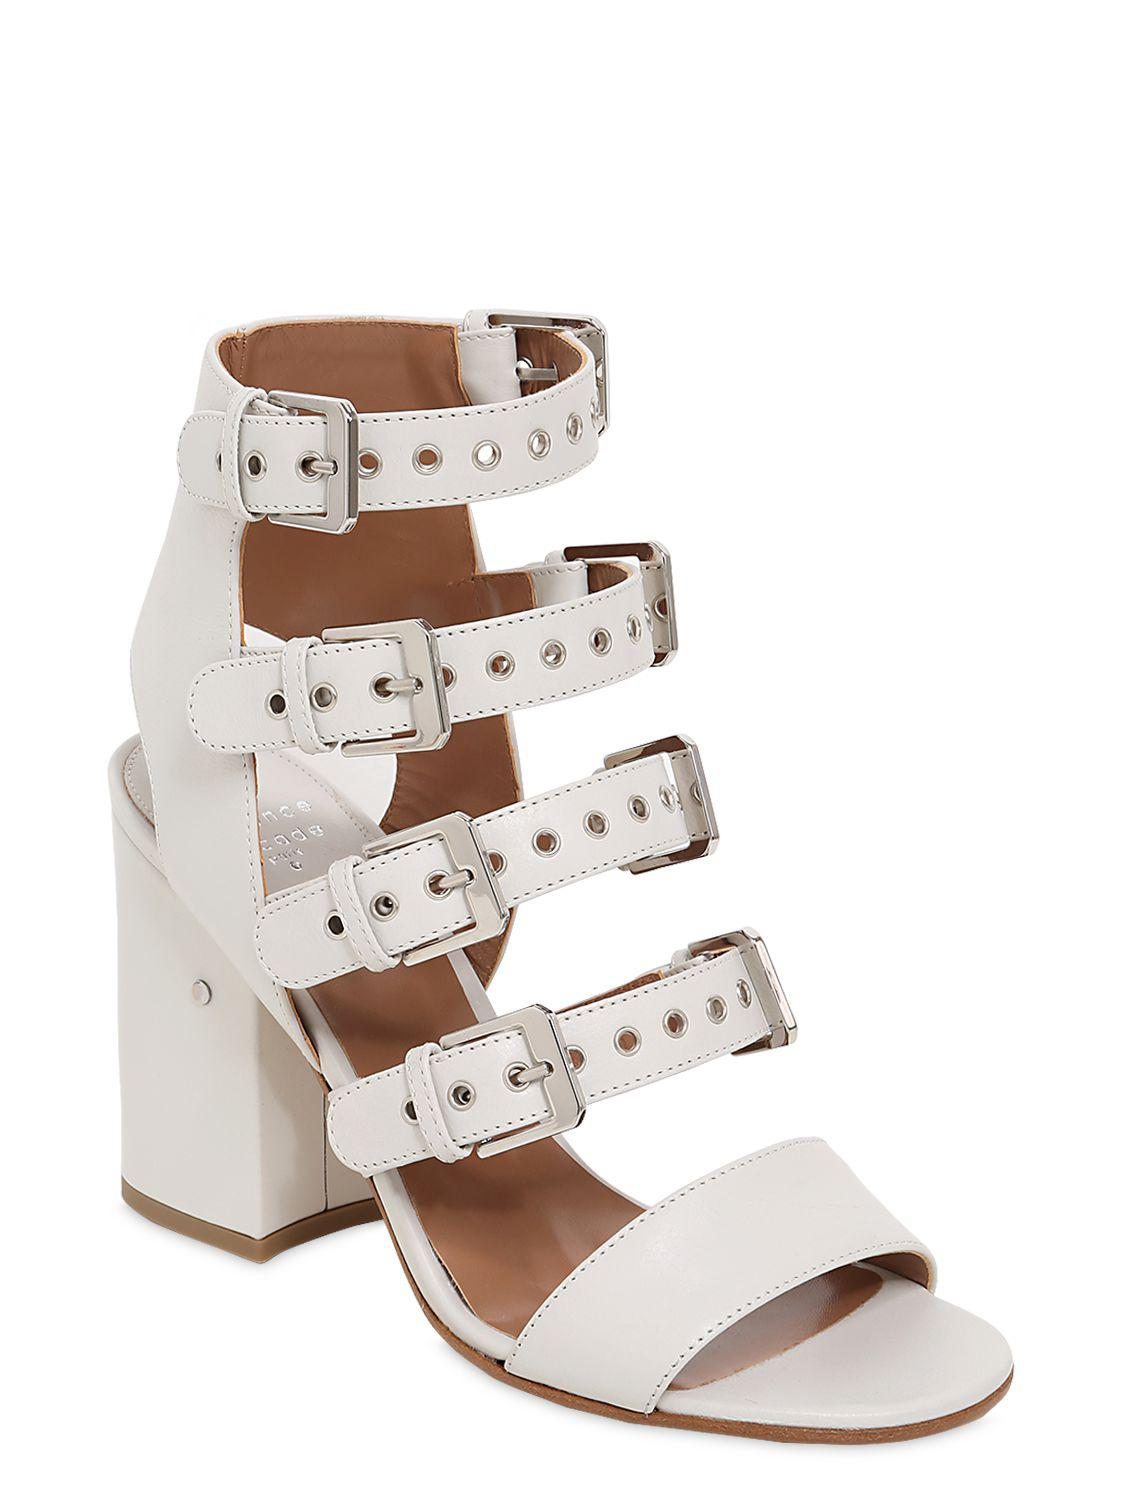 LAURENCE DACADE 90MM KLOE BUCKLES LEATHER SANDALS Cheapest Price Sale Online New Arrival Good Selling Sale Online 7txSX